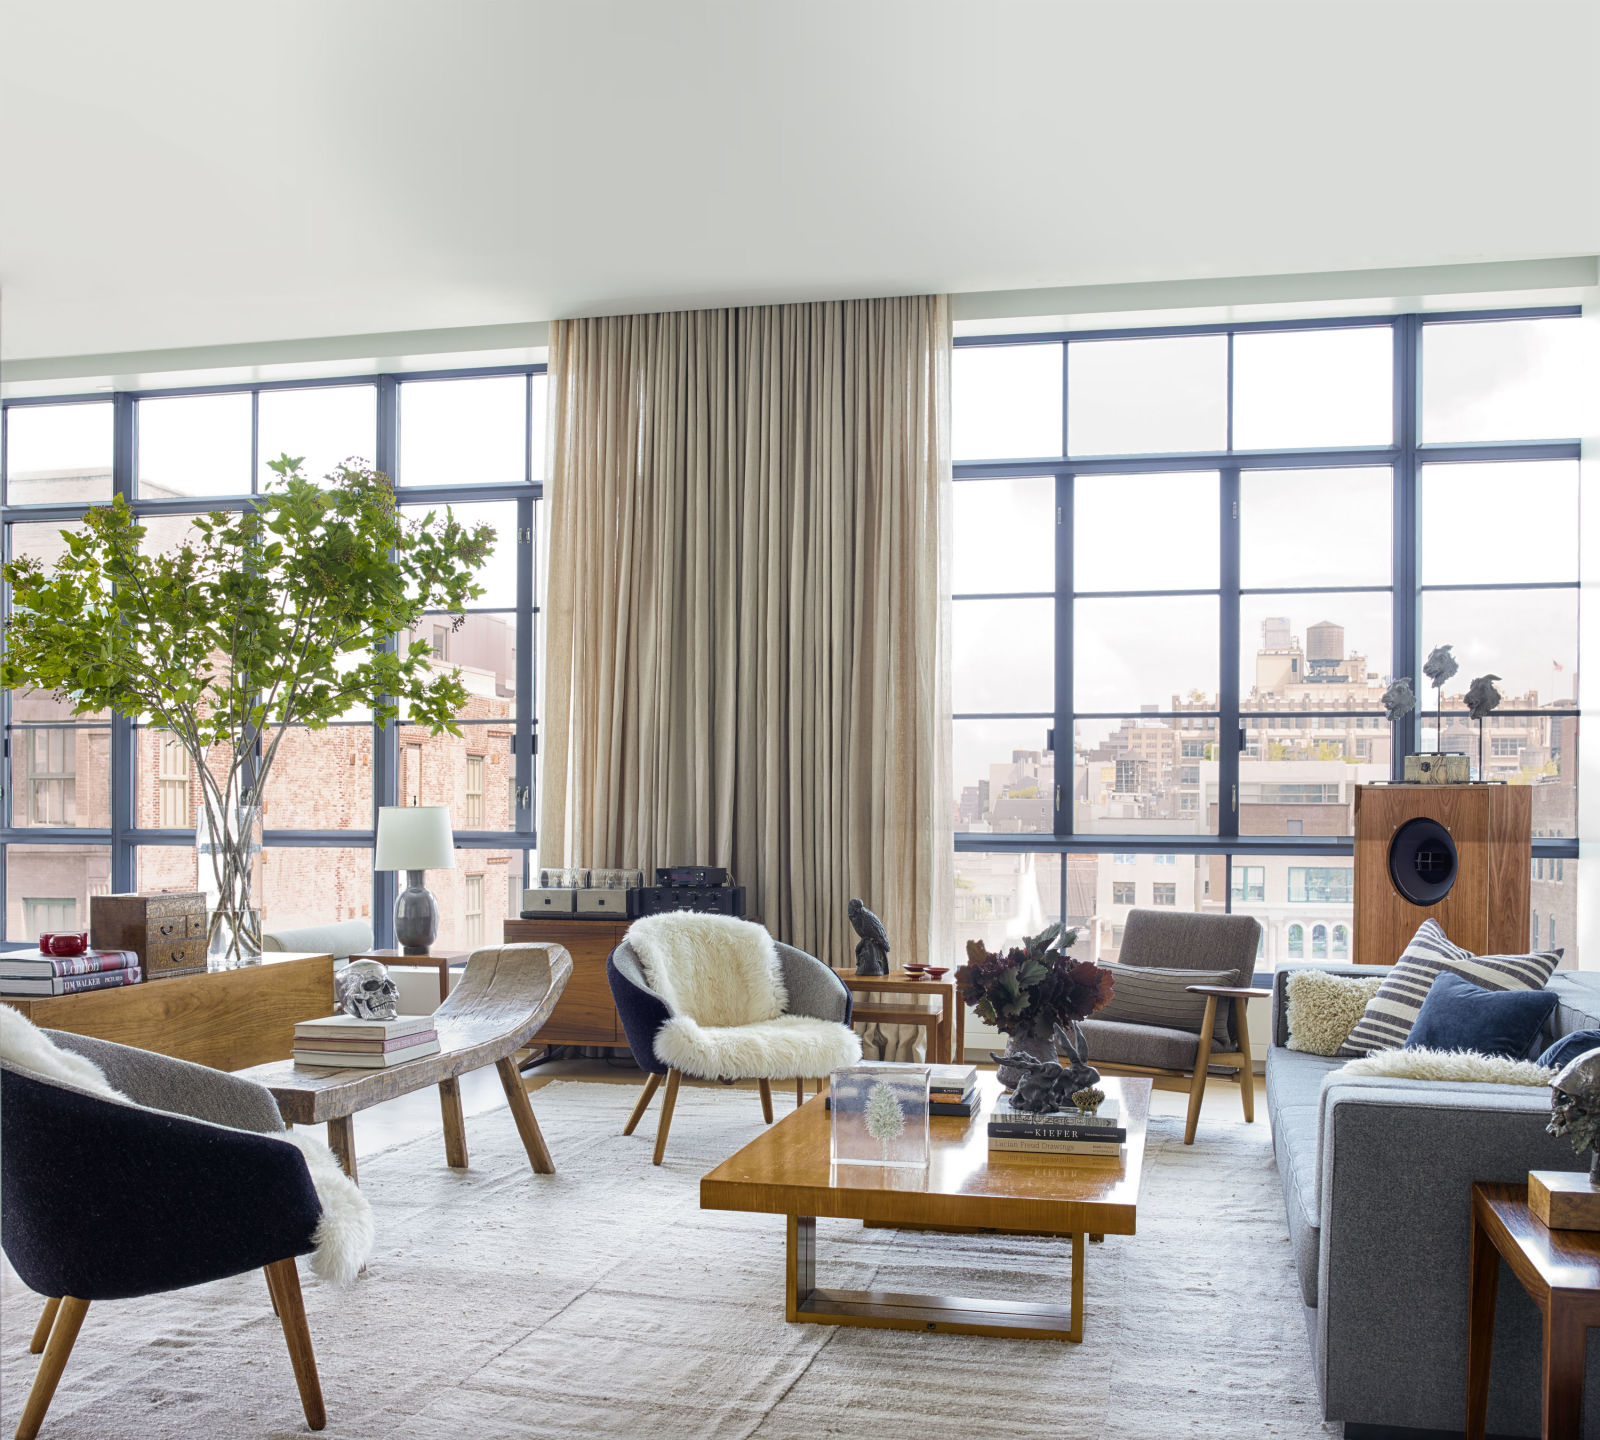 13 Stunning Apartments In New York: Loveisspeed.......: HOUSE TOUR: A New York City Apartment